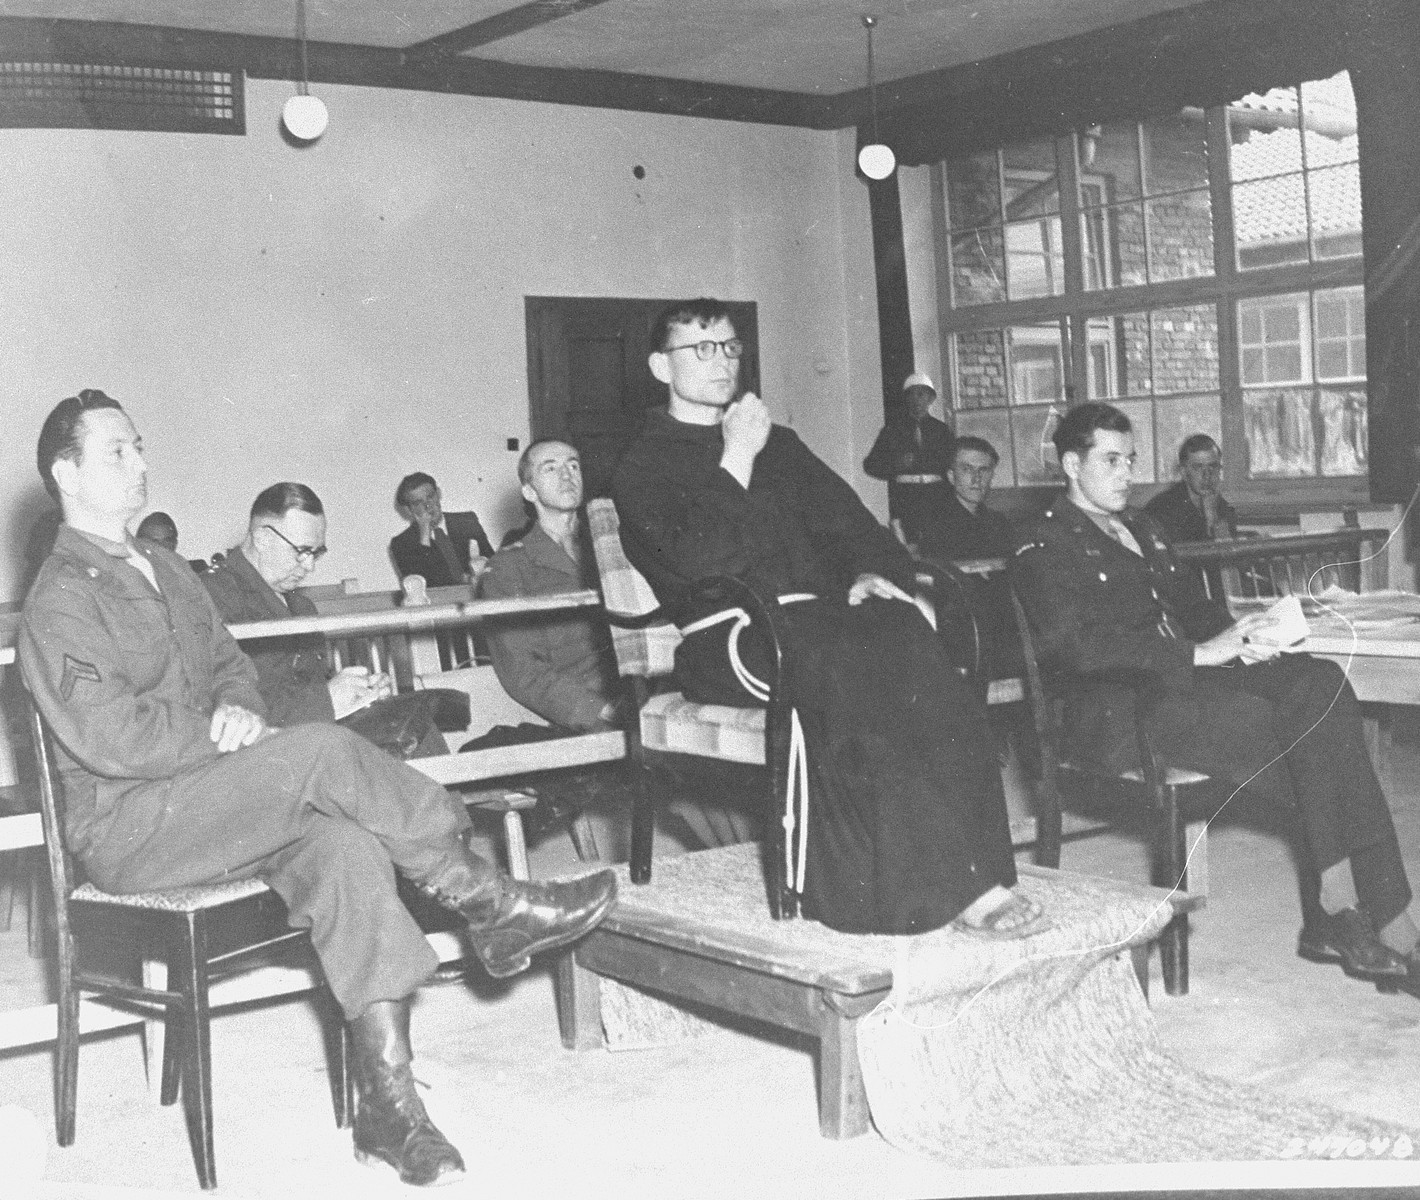 Father Lelere, a former prisoner, testifies at the trial of former camp personnel and prisoners from Flossenbuerg.  On the right is Fred Stecker, a court interpreter.